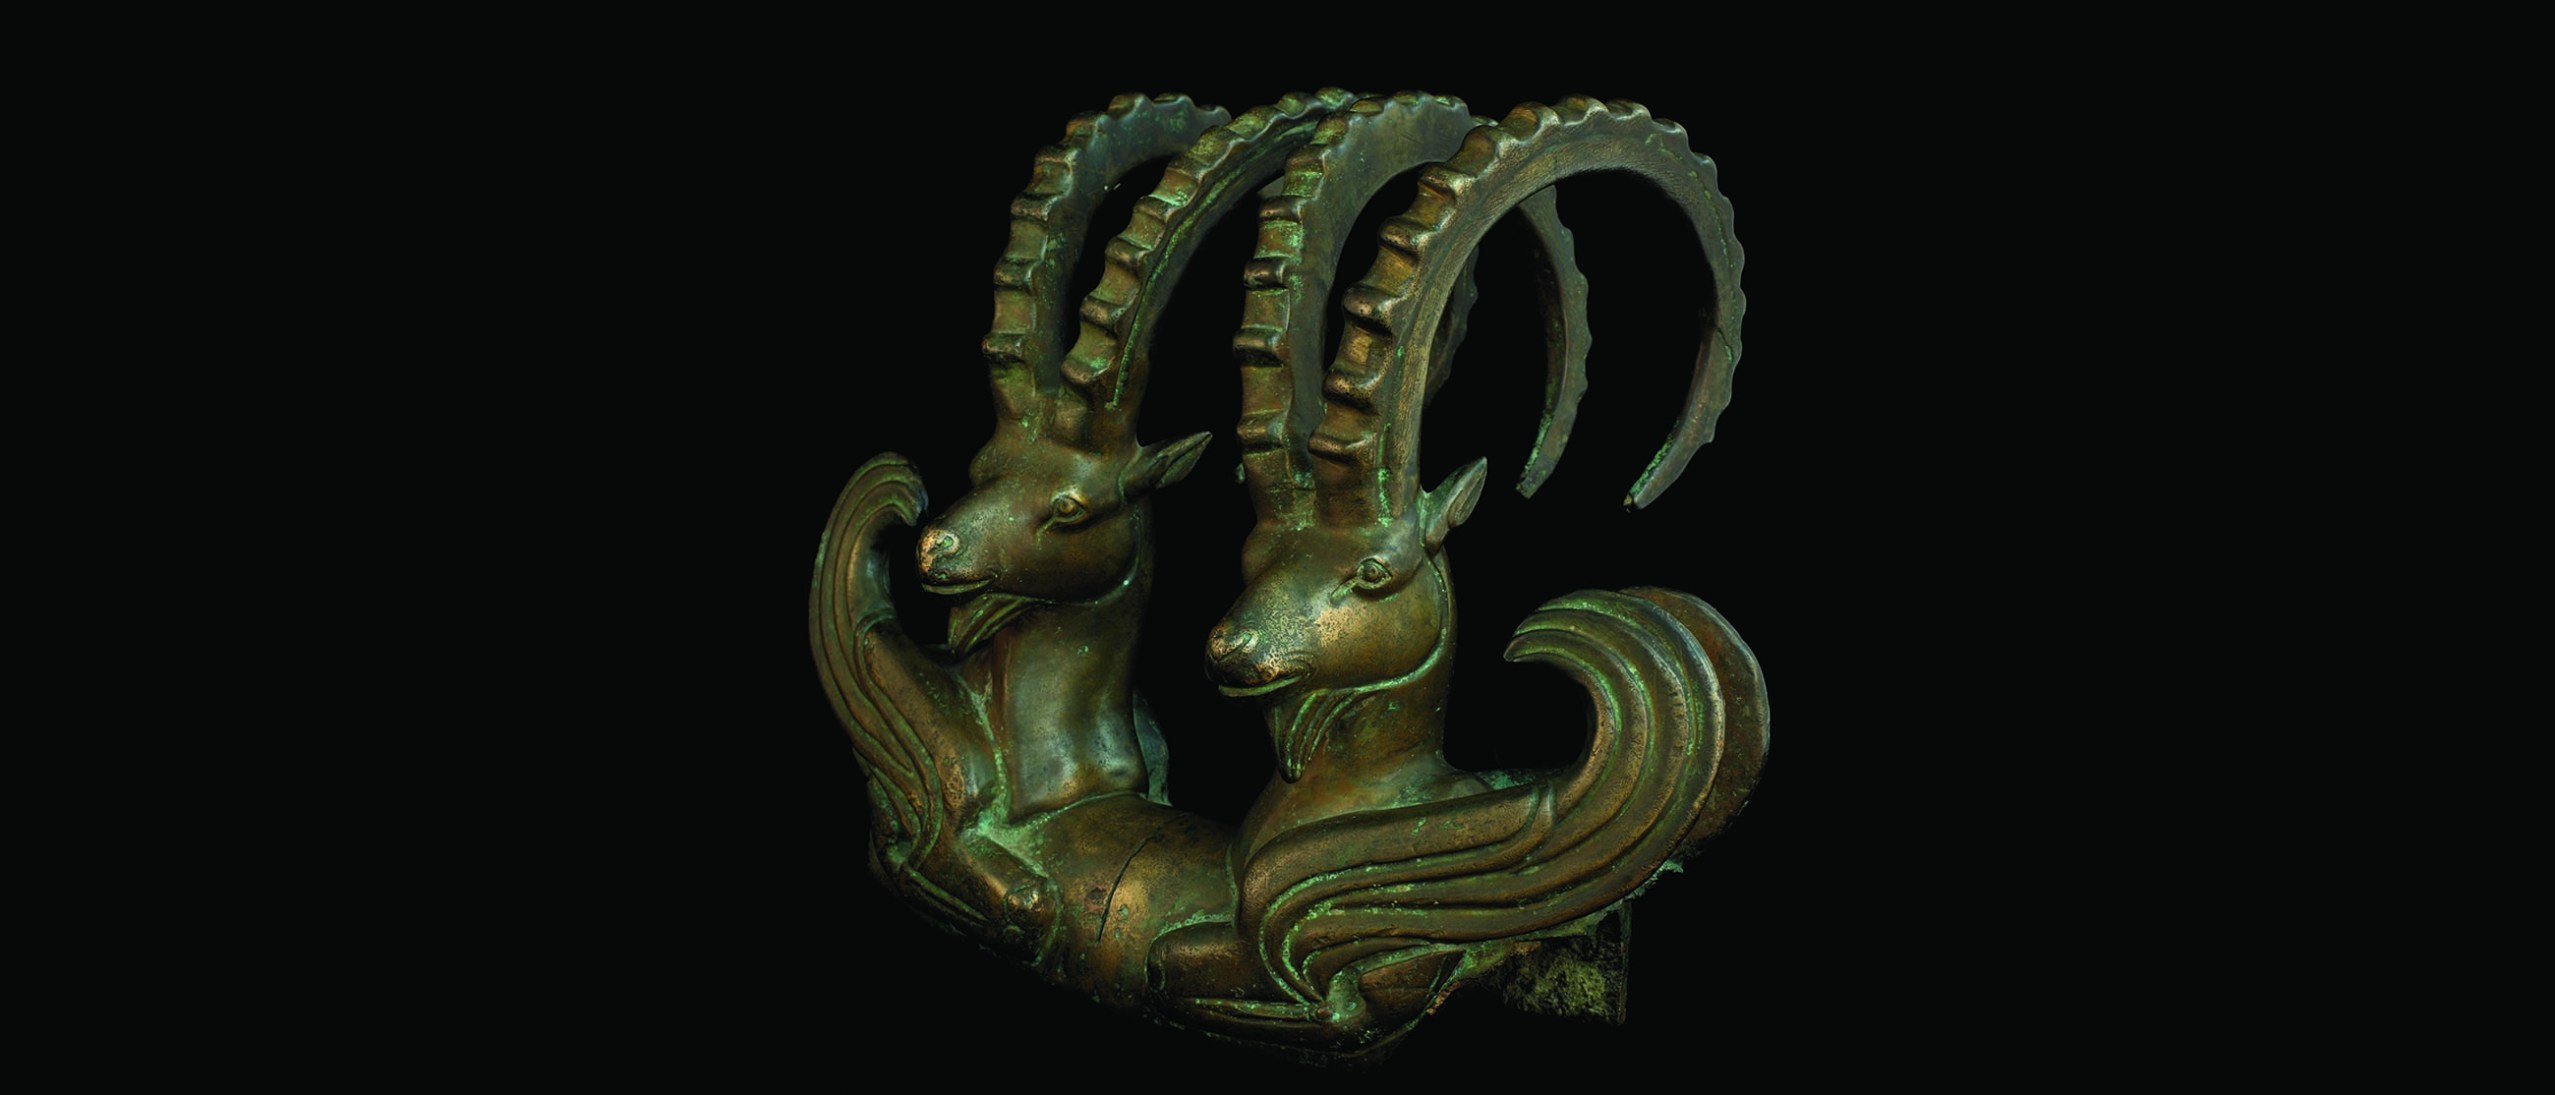 Image of Protome; 3rd-5th century B.C.E.; Protome of a pair of mountain goats with wings; Bronze; H x W: 17.5 x 4.2 cm; Central State Museum: KP 23732; Almaty, Kazakhstan